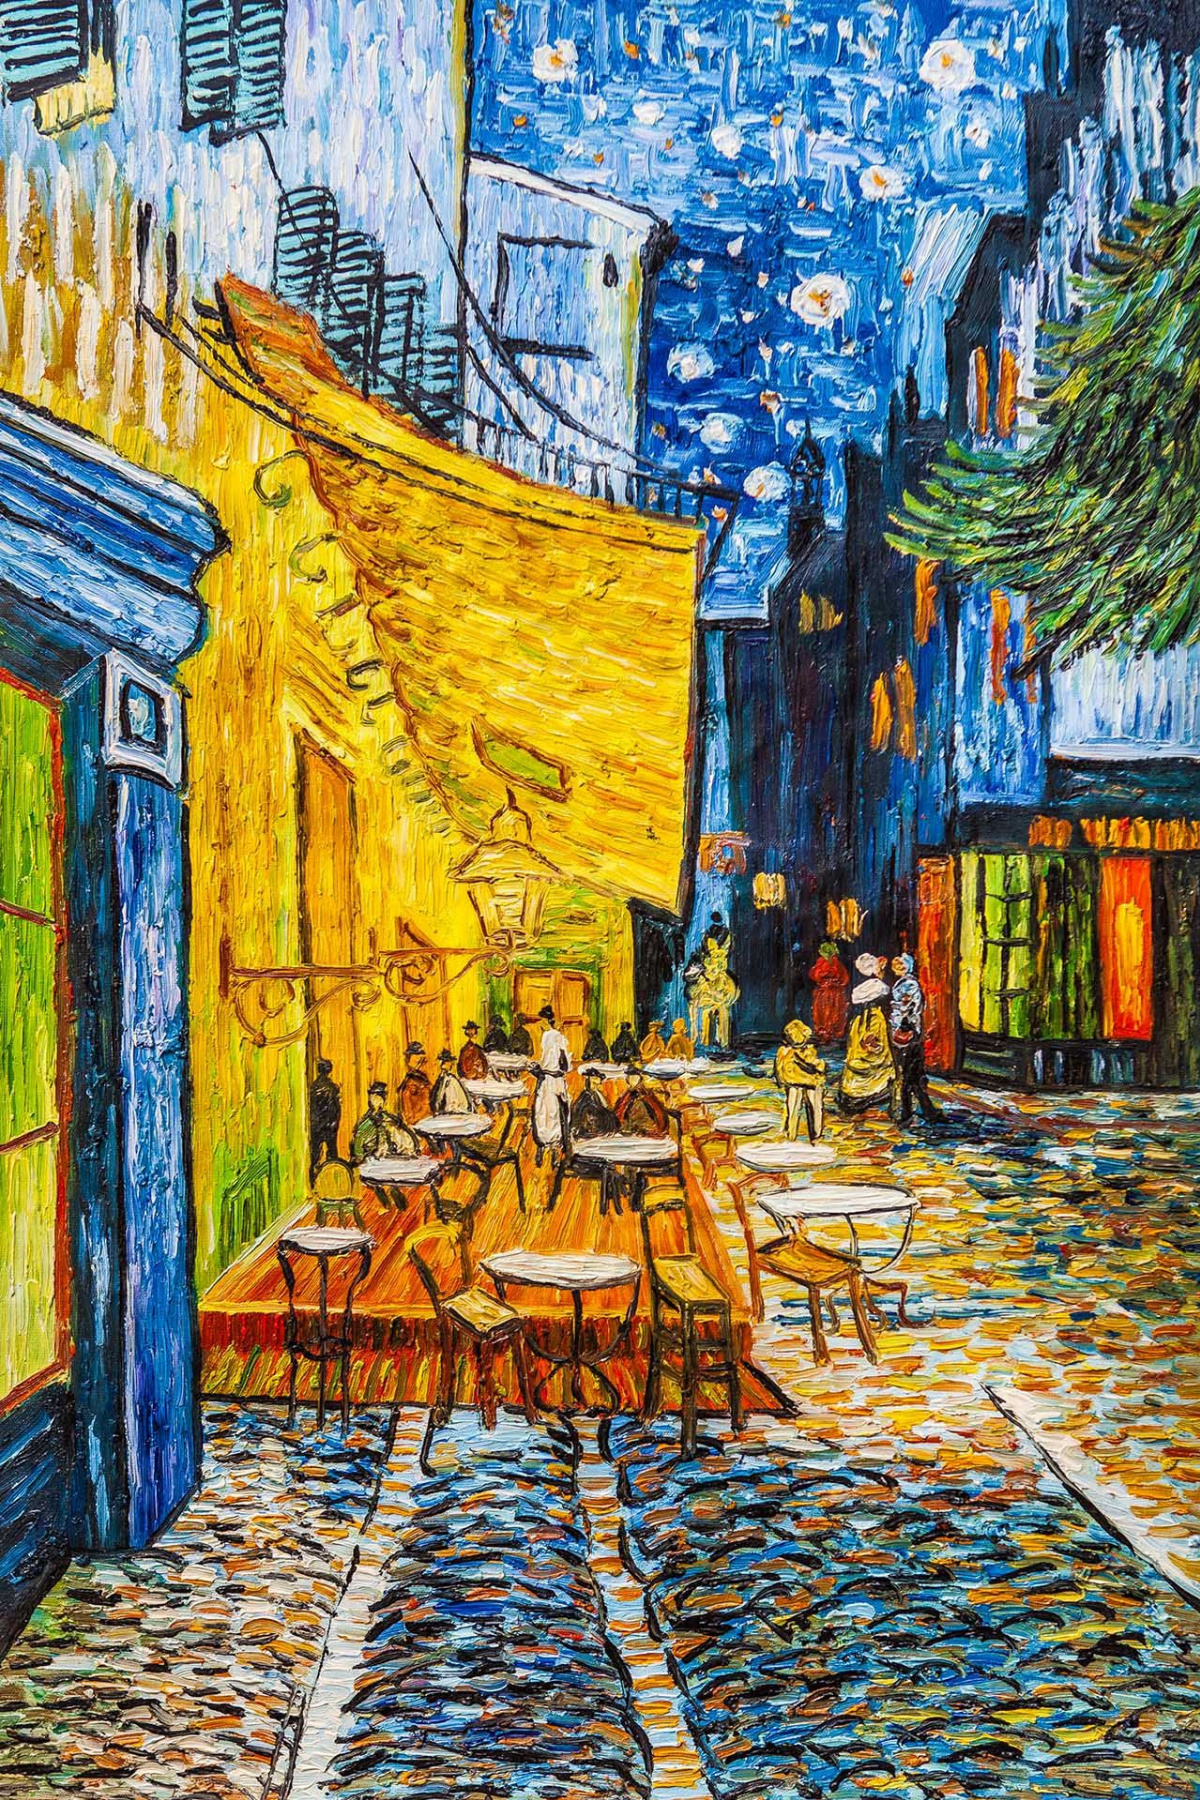 "Andrzej Vlodarczyk. Copy of Van Gogh's painting ""The Terrace of the Place du Forum in Arles"""